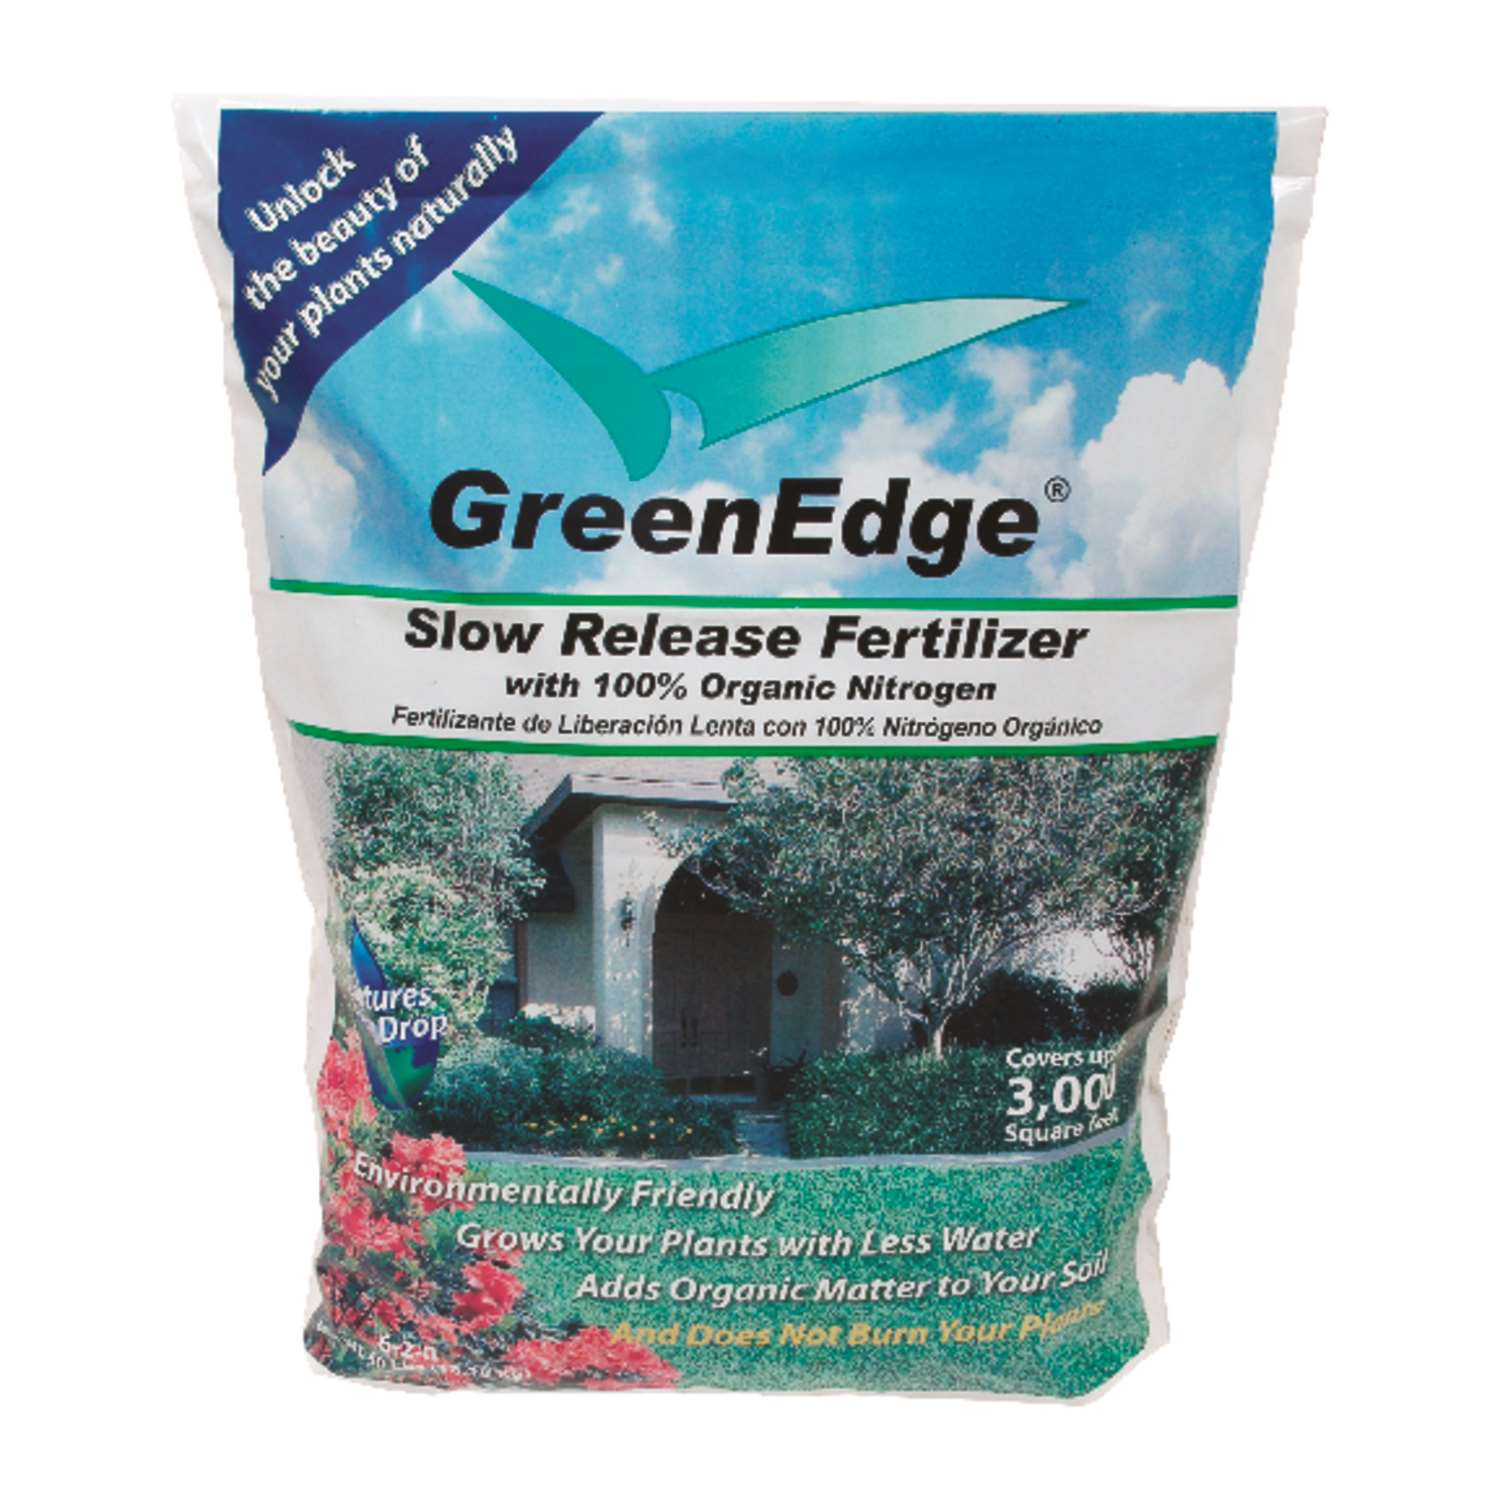 Greenedge Organic Lawn Fertilizer - Milorganite Alternative